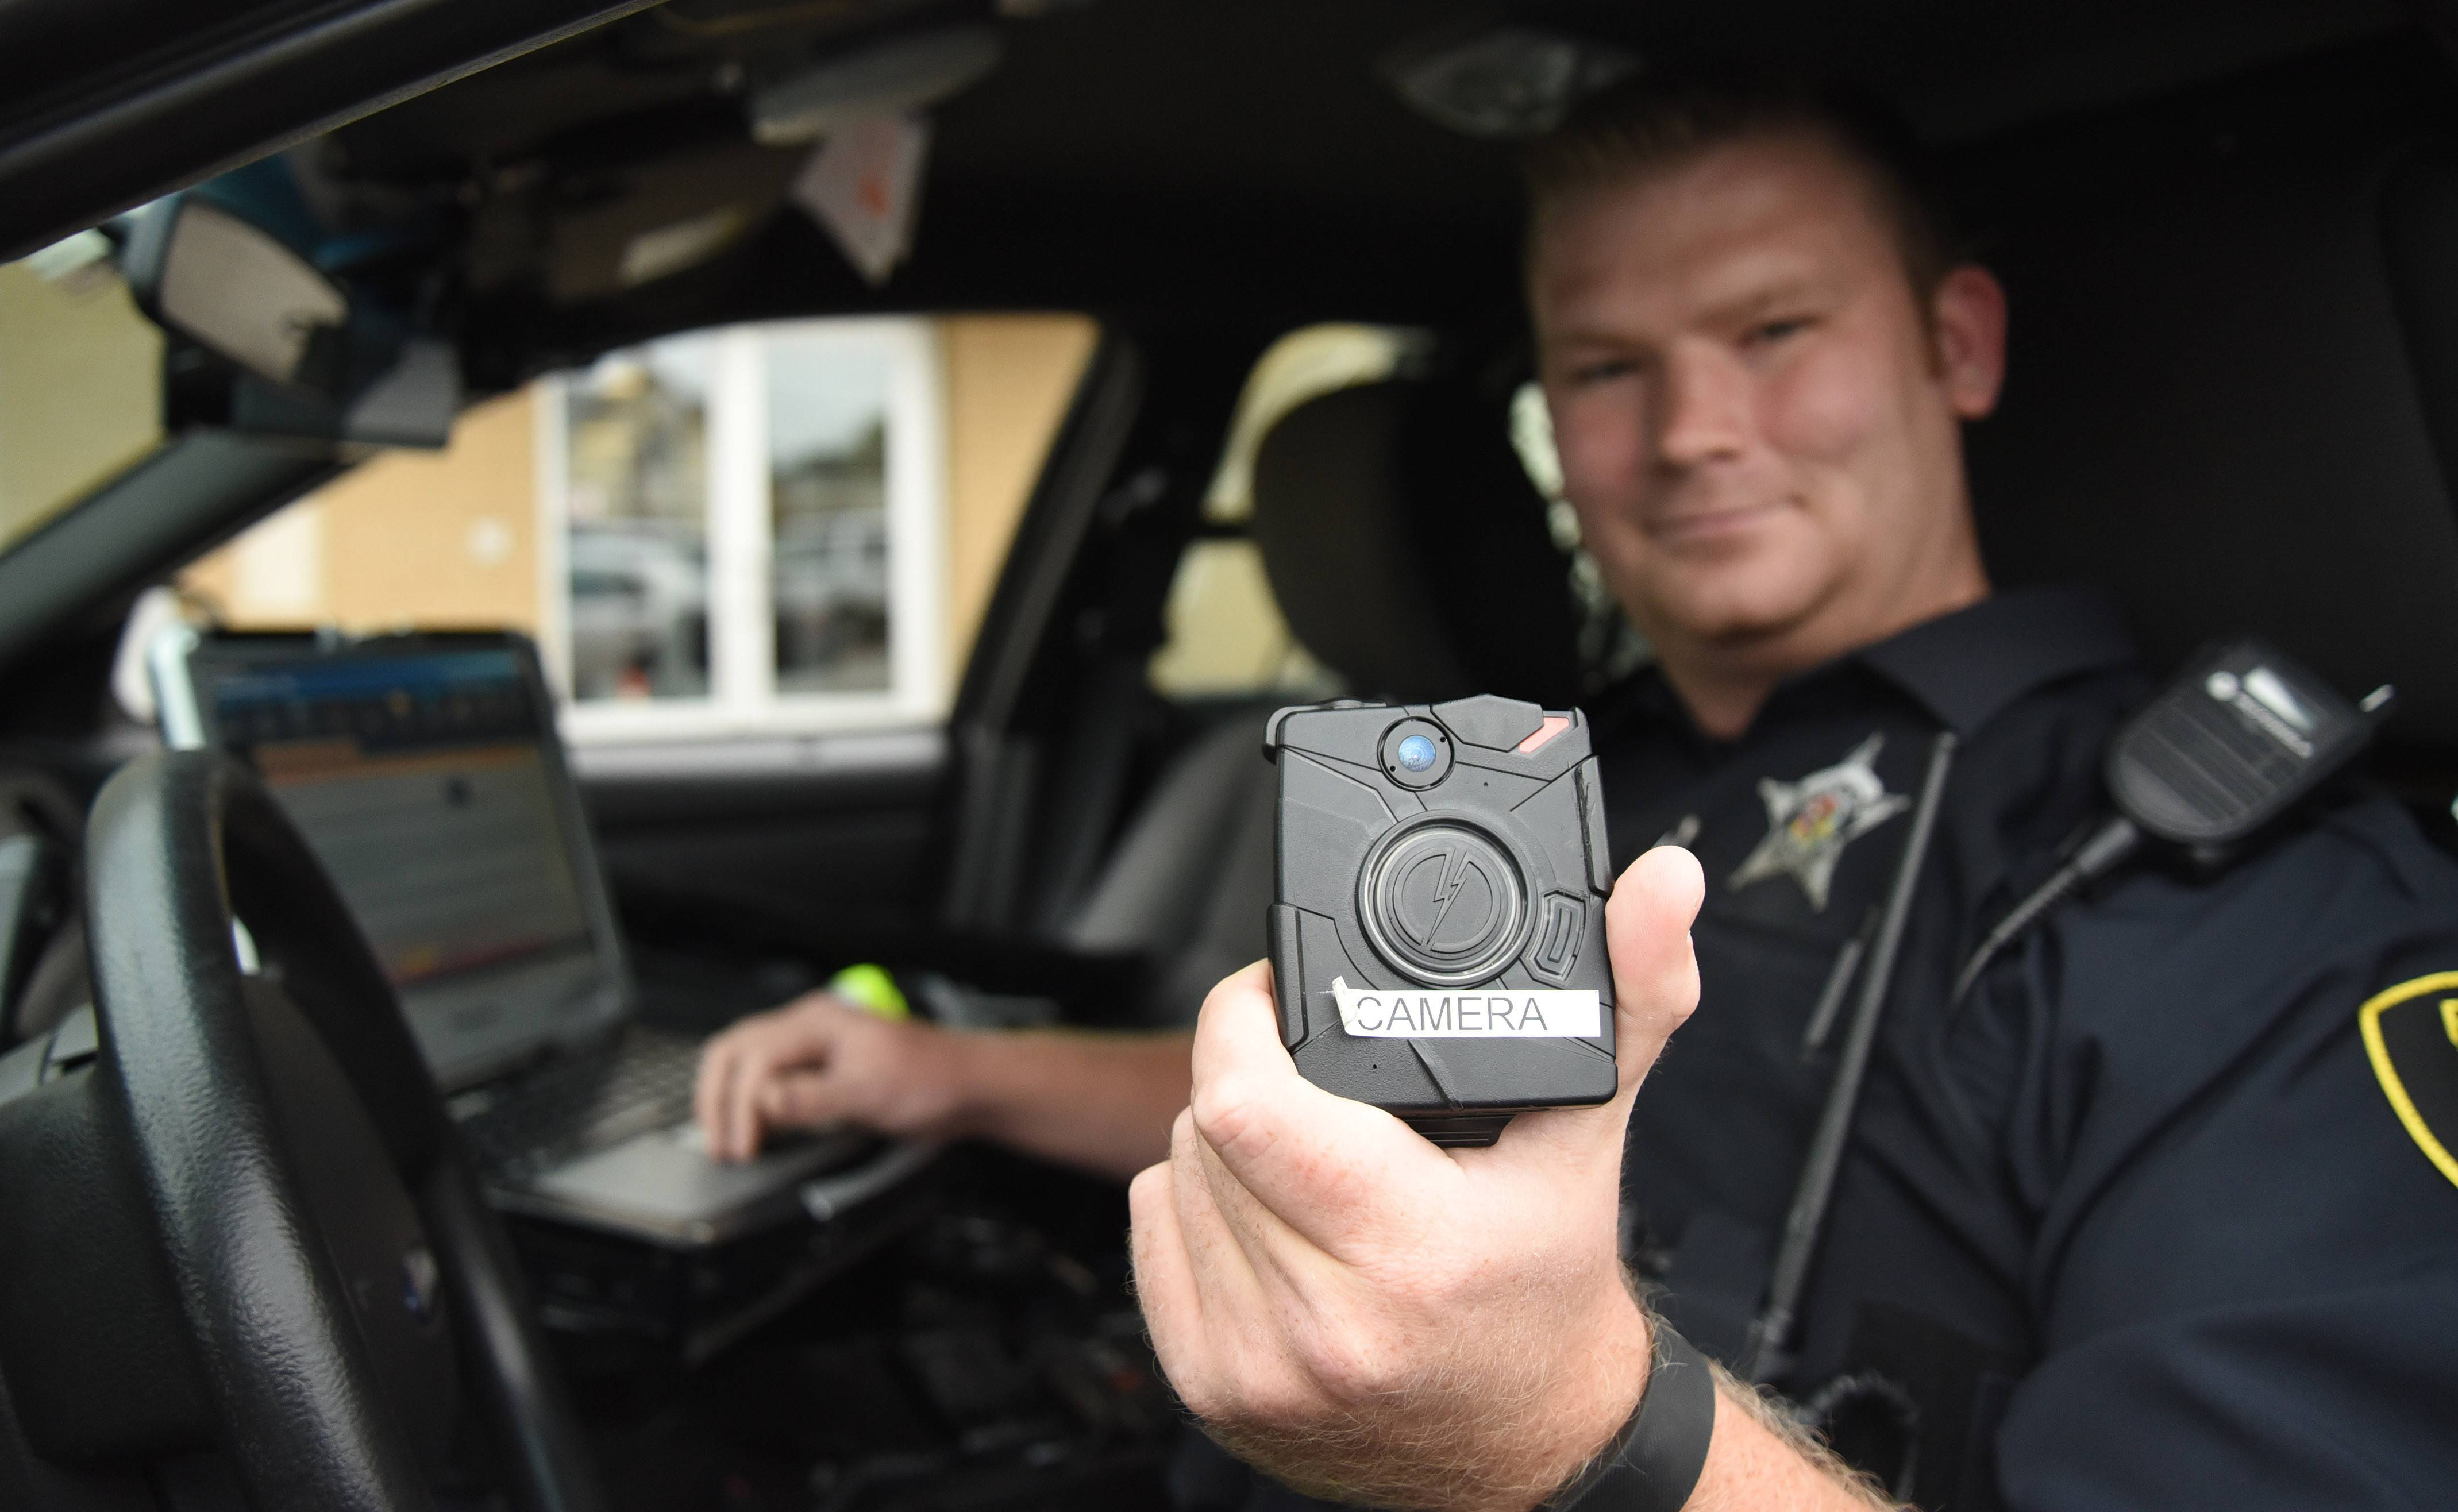 Elgin has put out a request for bids for 200 body cameras for police officers. Here, officer Michael Hutton shows a Taser Axon Body camera that he tested as part of a pilot program that ended in June.